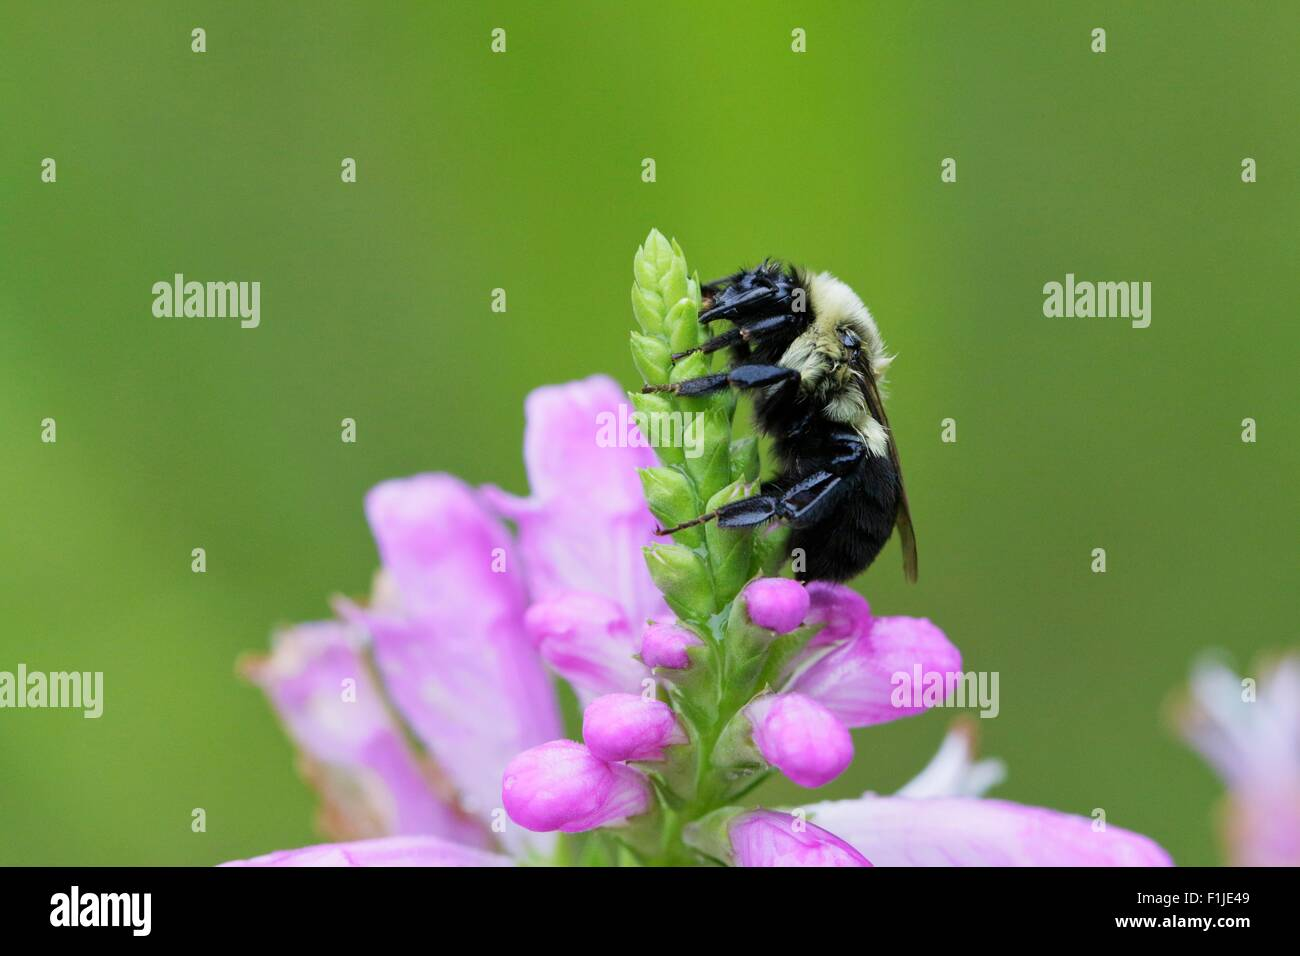 Bumblebee on obedient plant flower bud - Stock Image